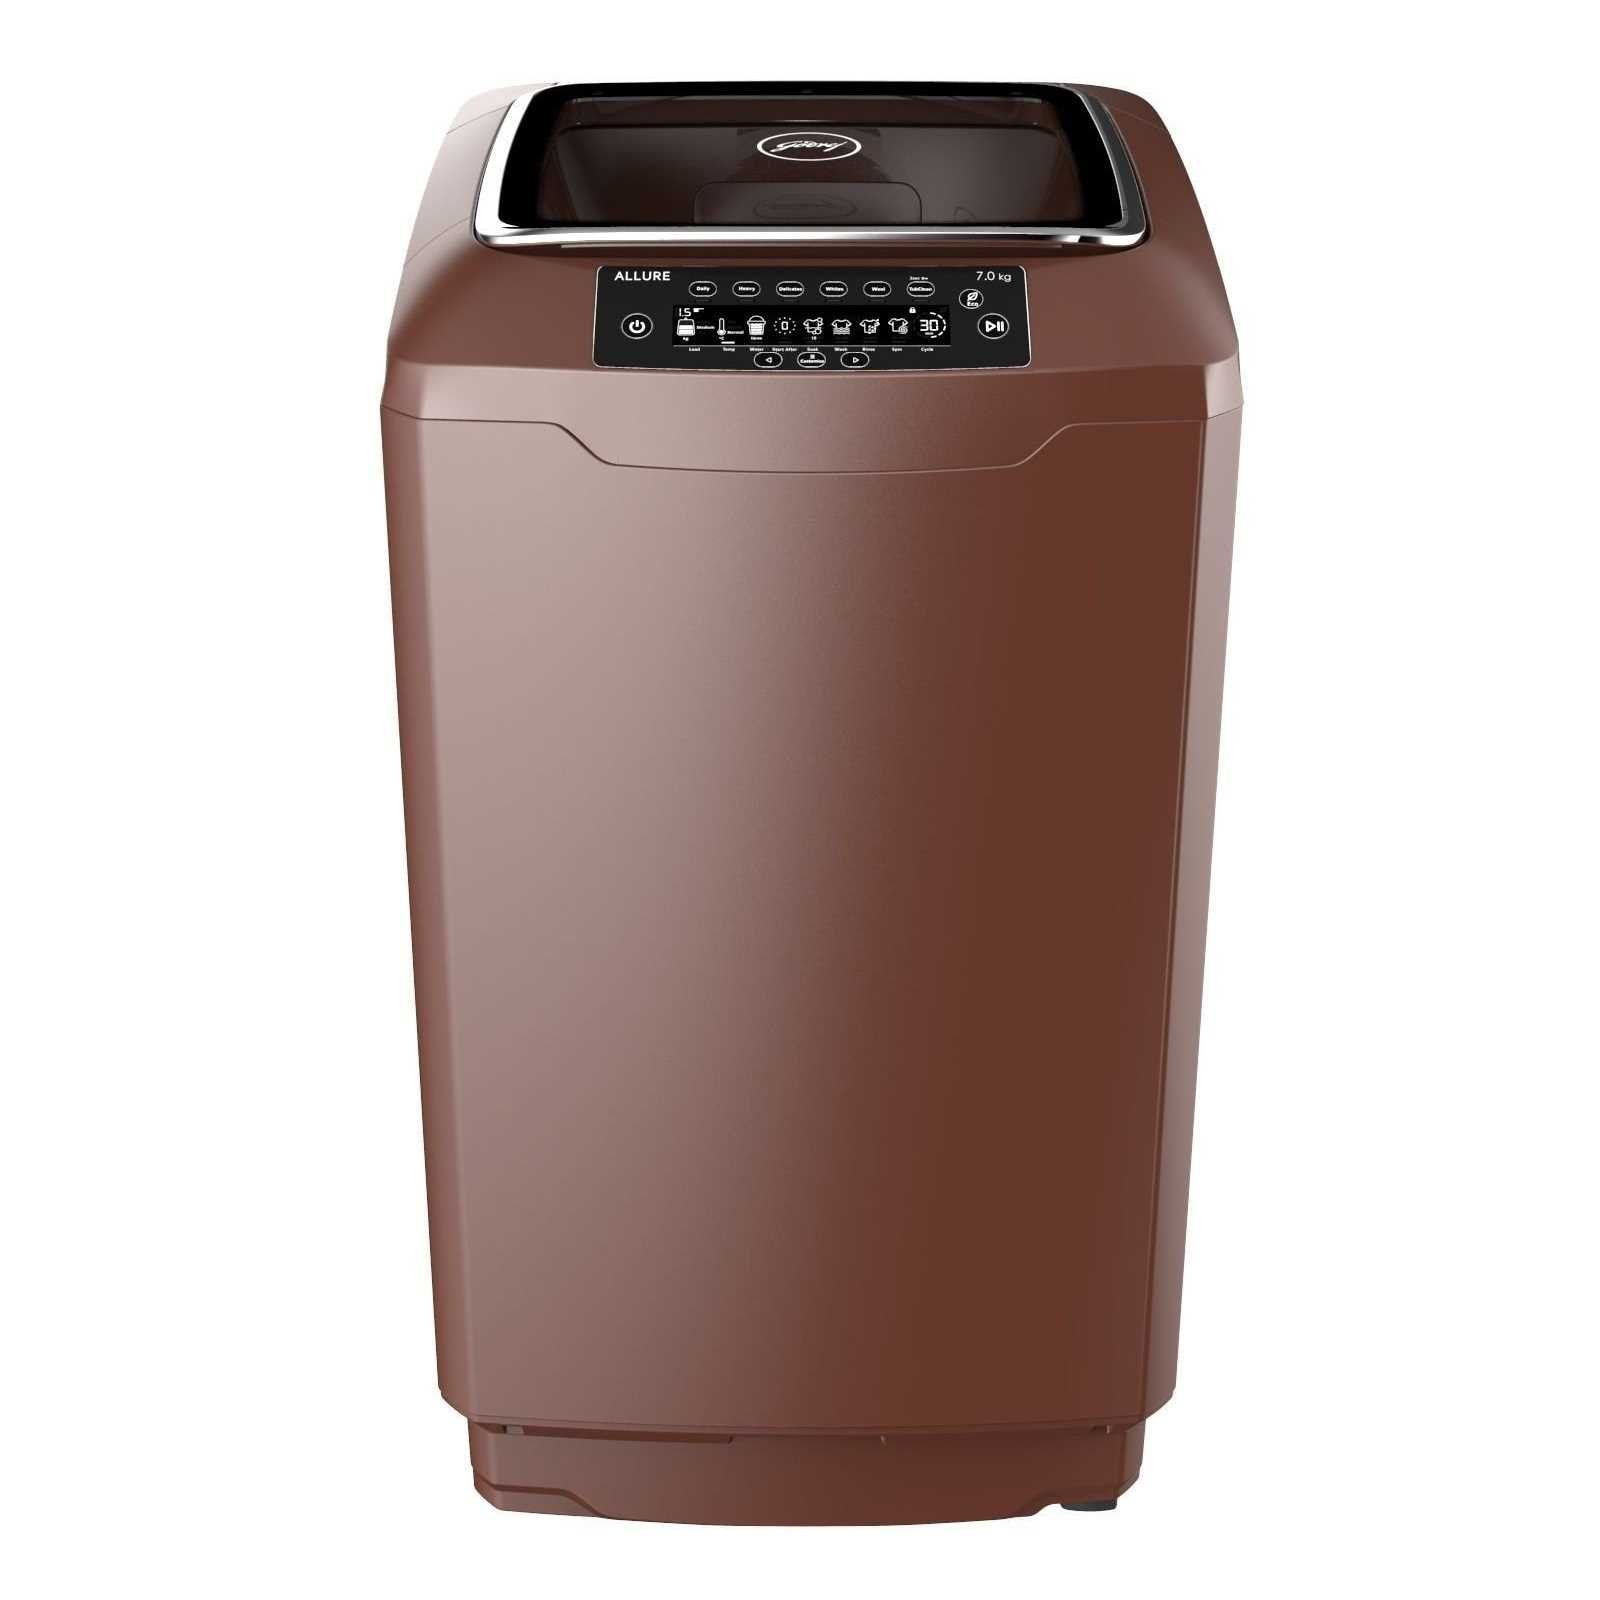 Godrej WT EON Allure 700 PANMP 7 Kg Fully Automatic Top Load Washing Machine